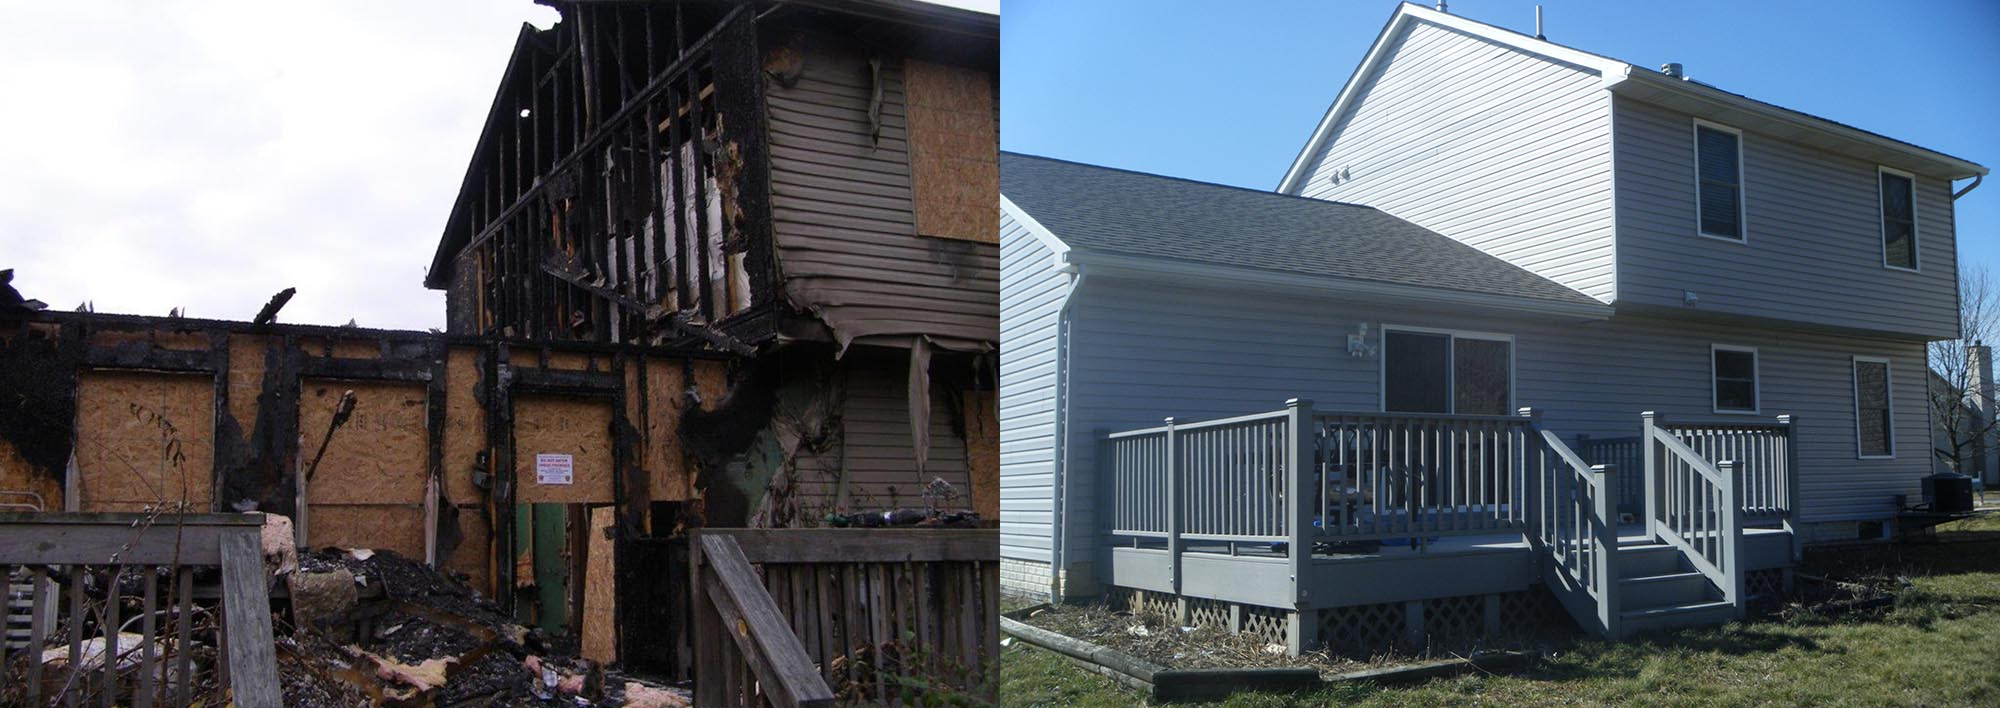 Before and After of a Burnt House